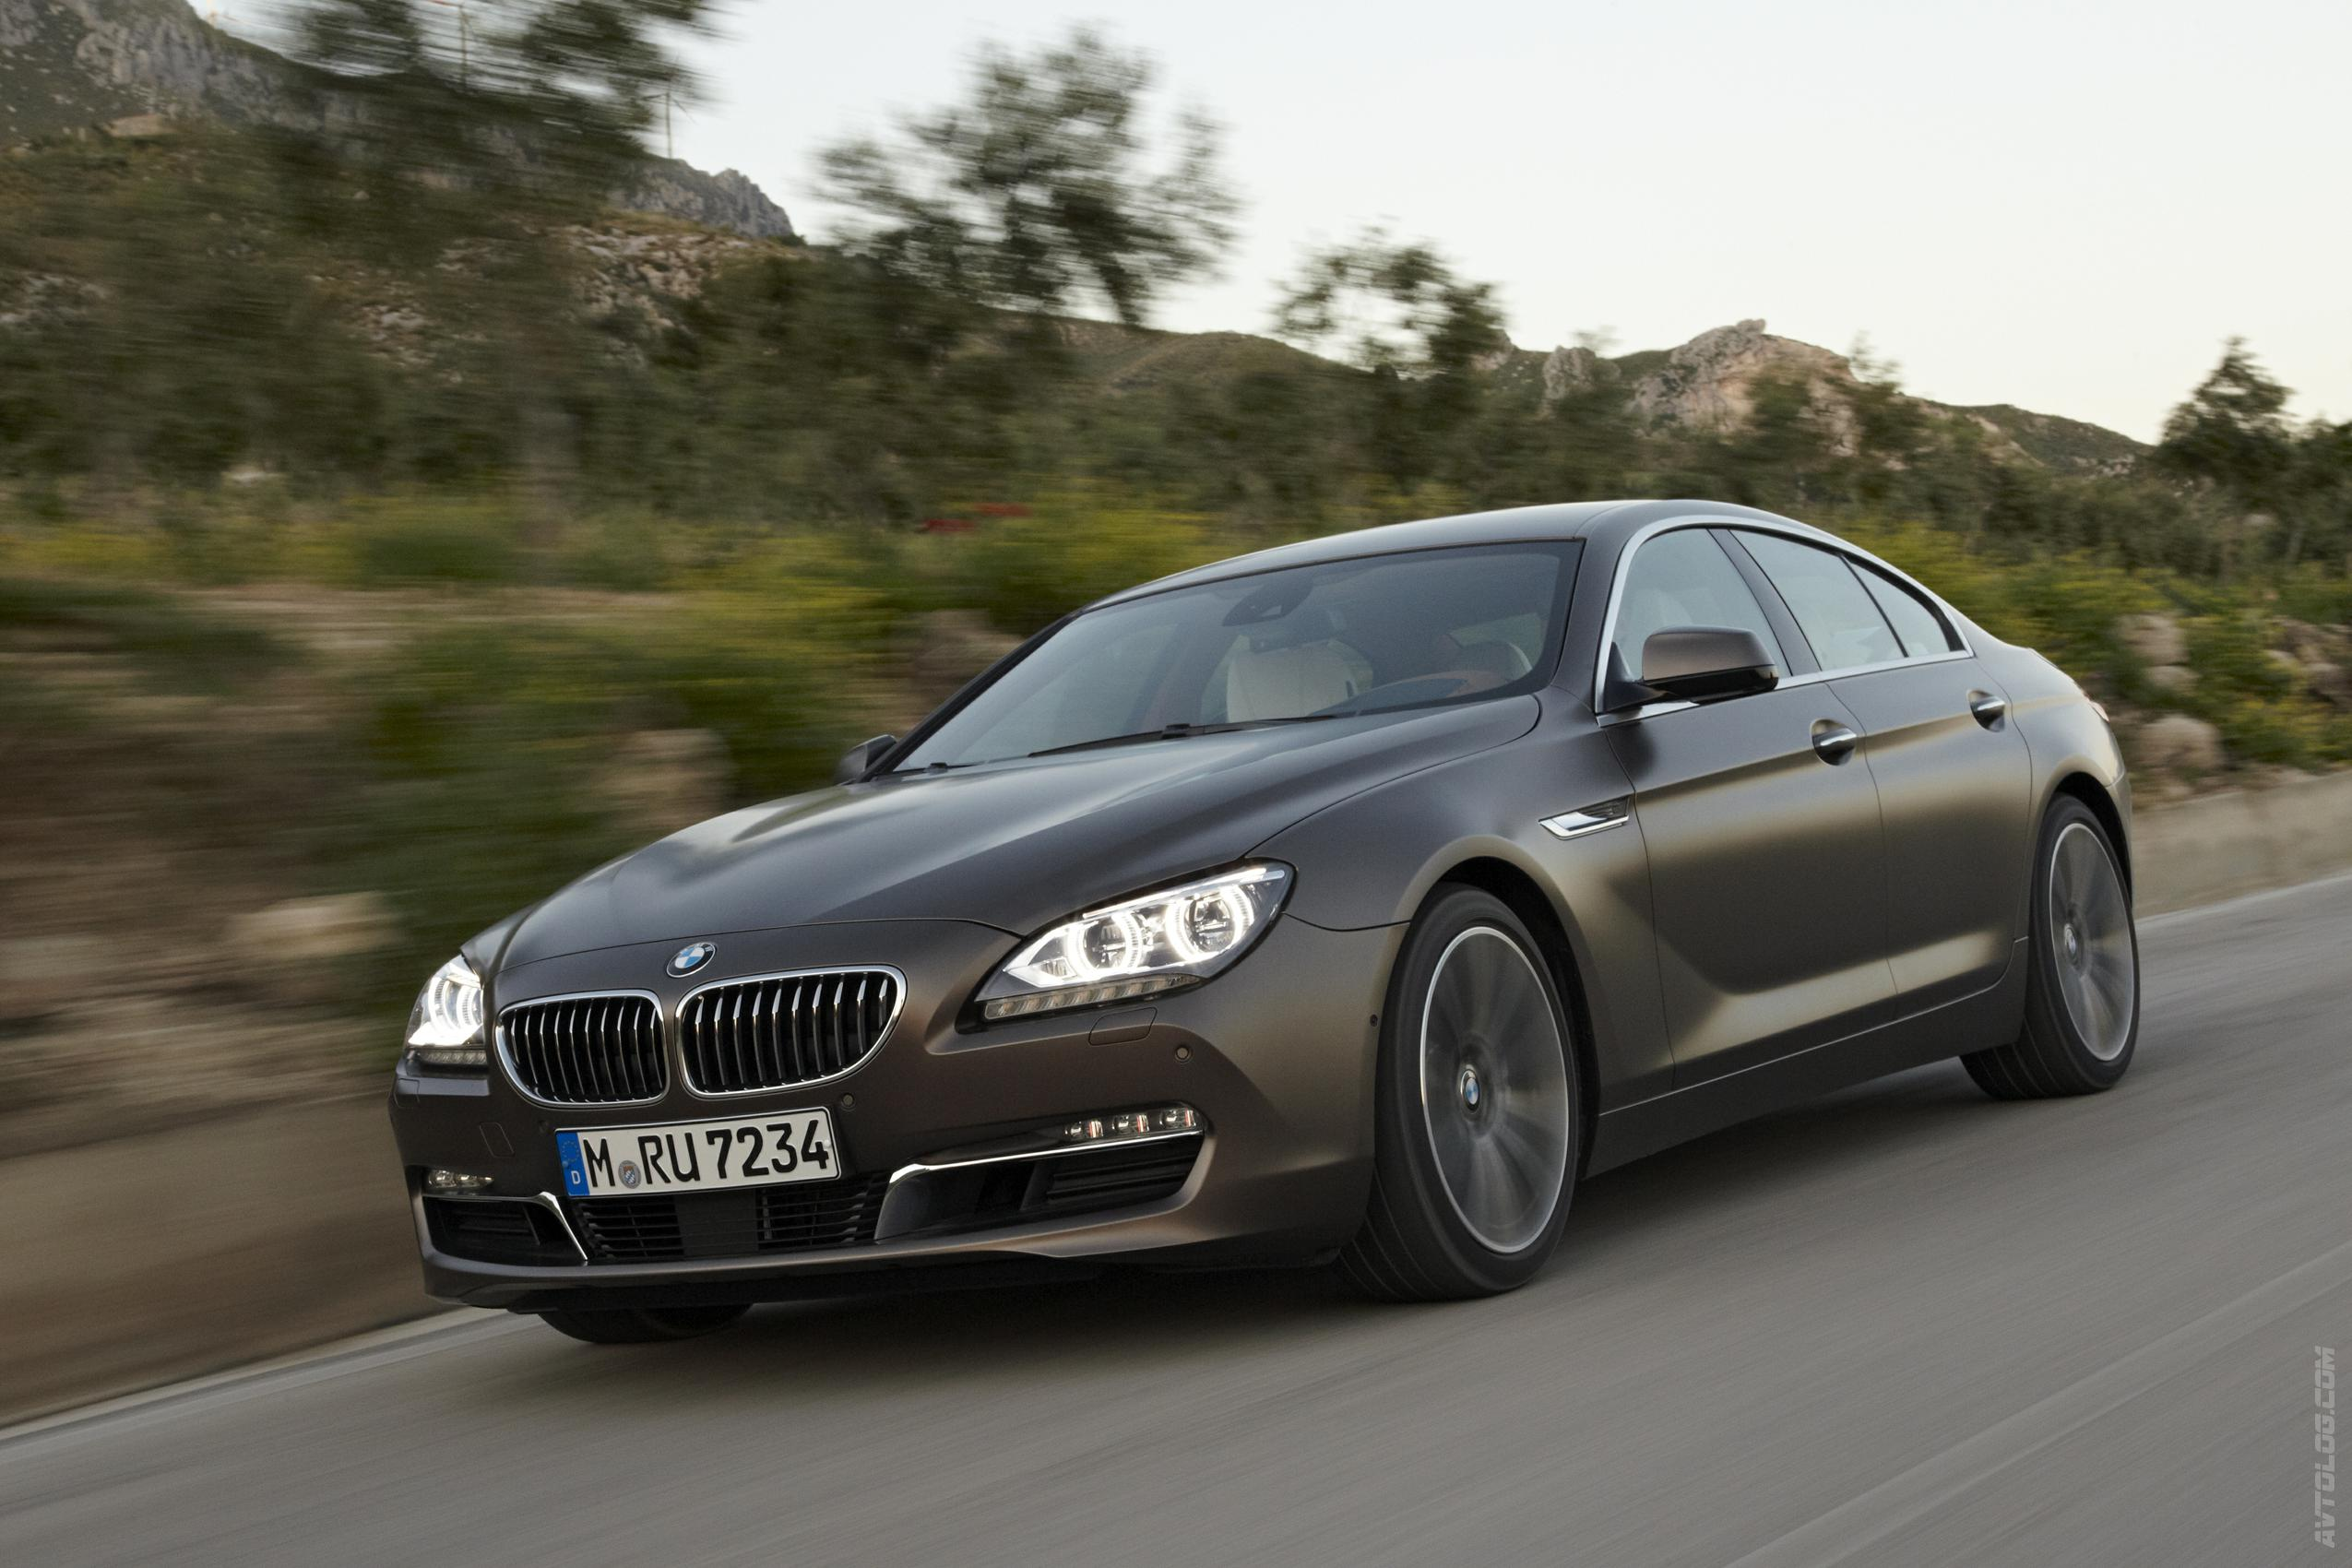 2012 BMW 6 Series Coupe photo - 1